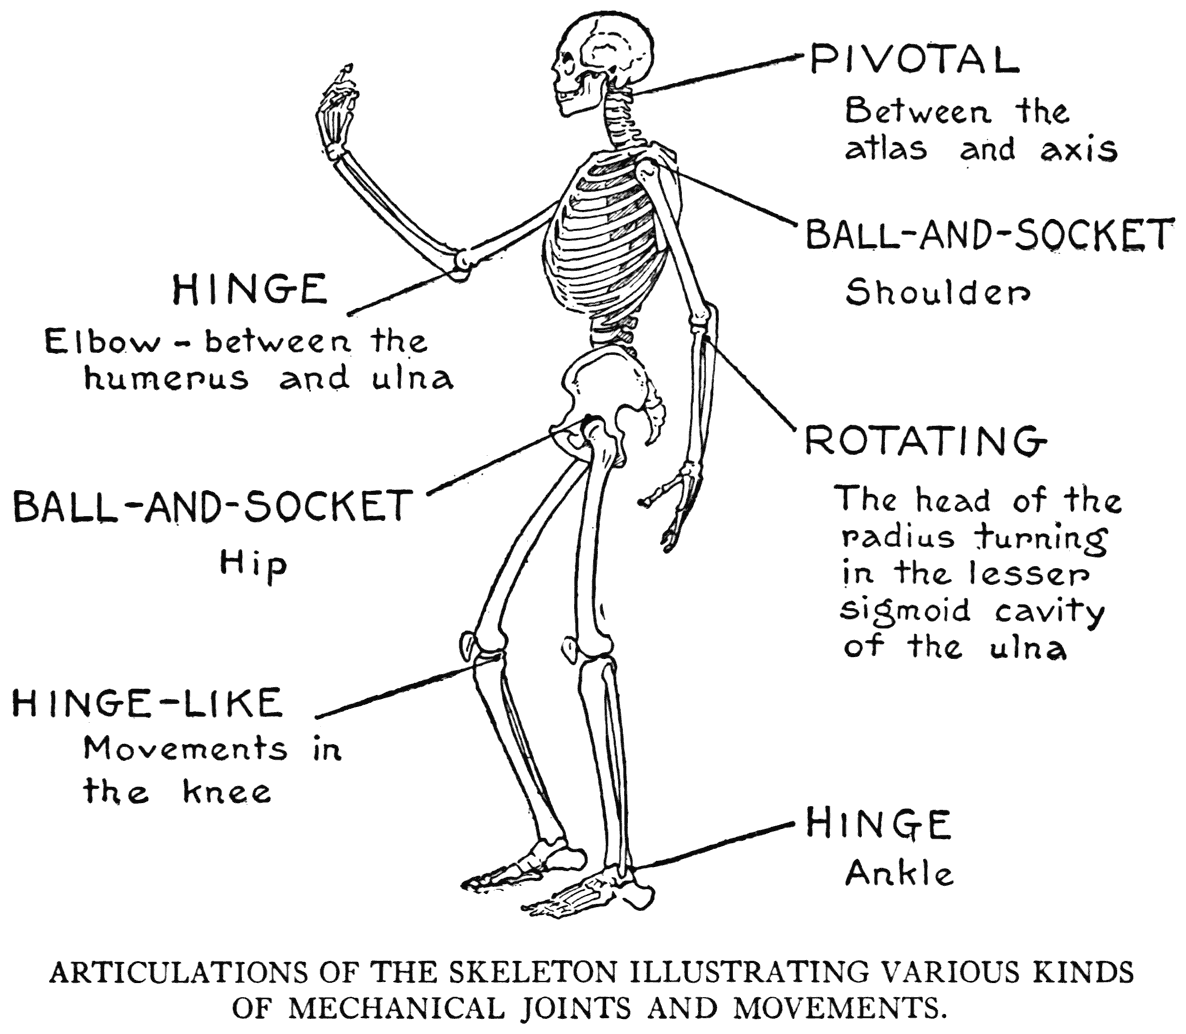 examples of a hinge joint in the human body - Google Search ...